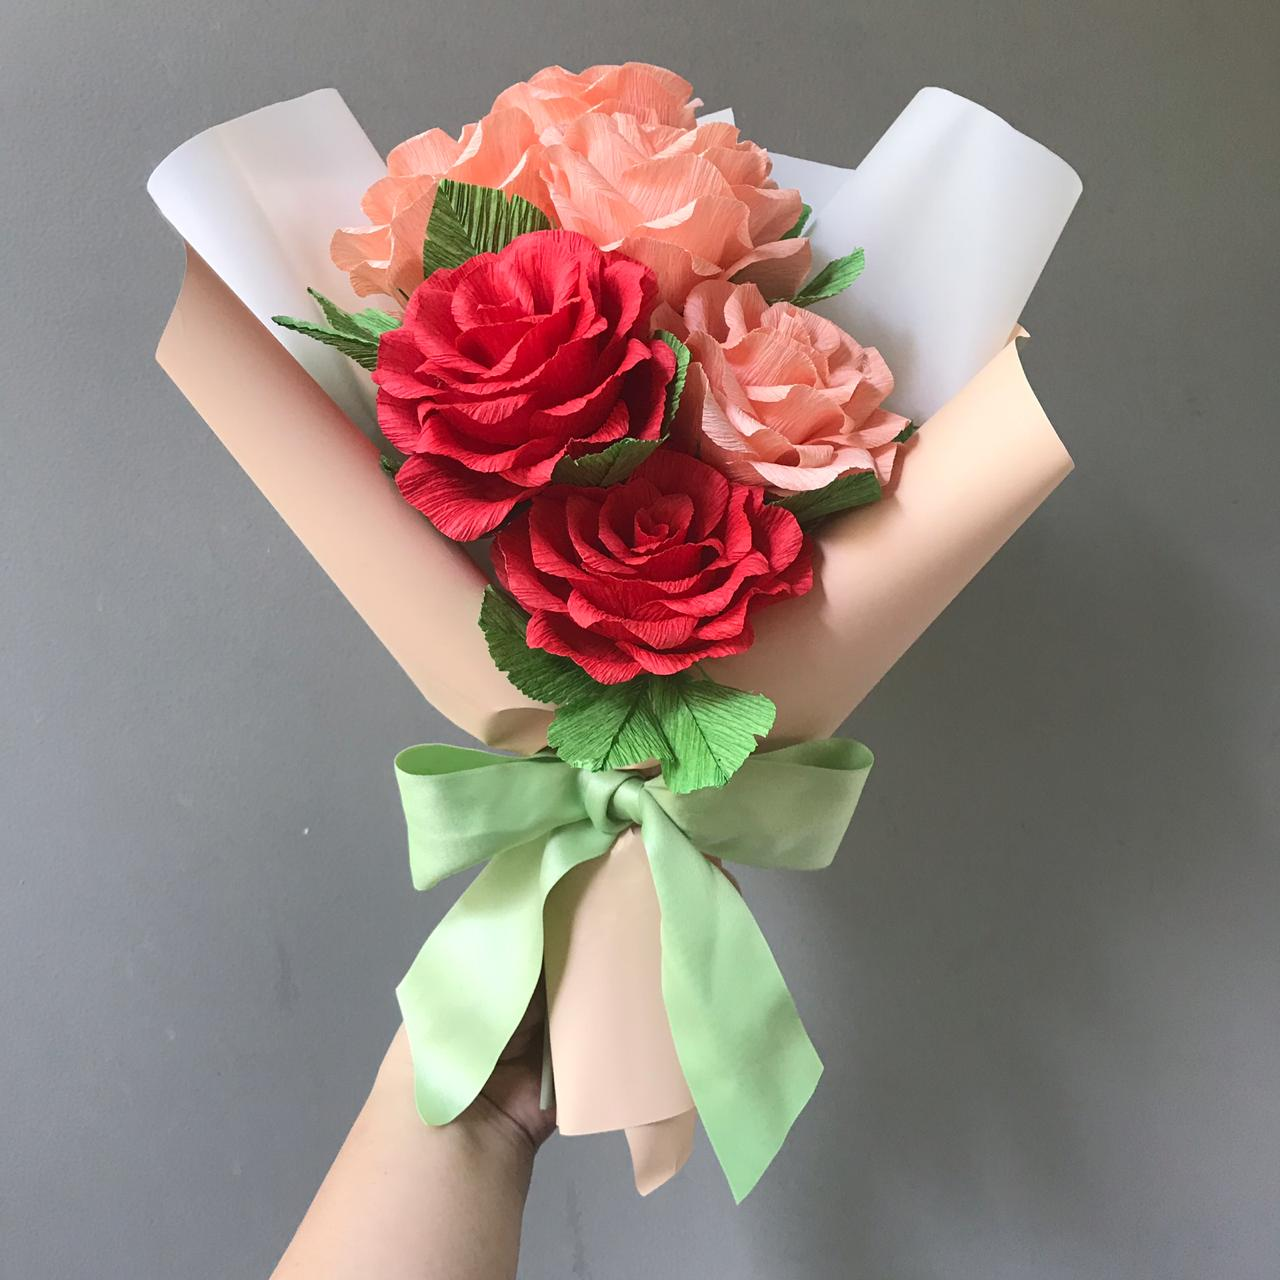 Learn How To Make Korean Wrapping Crepe Paper Flower Bouquet